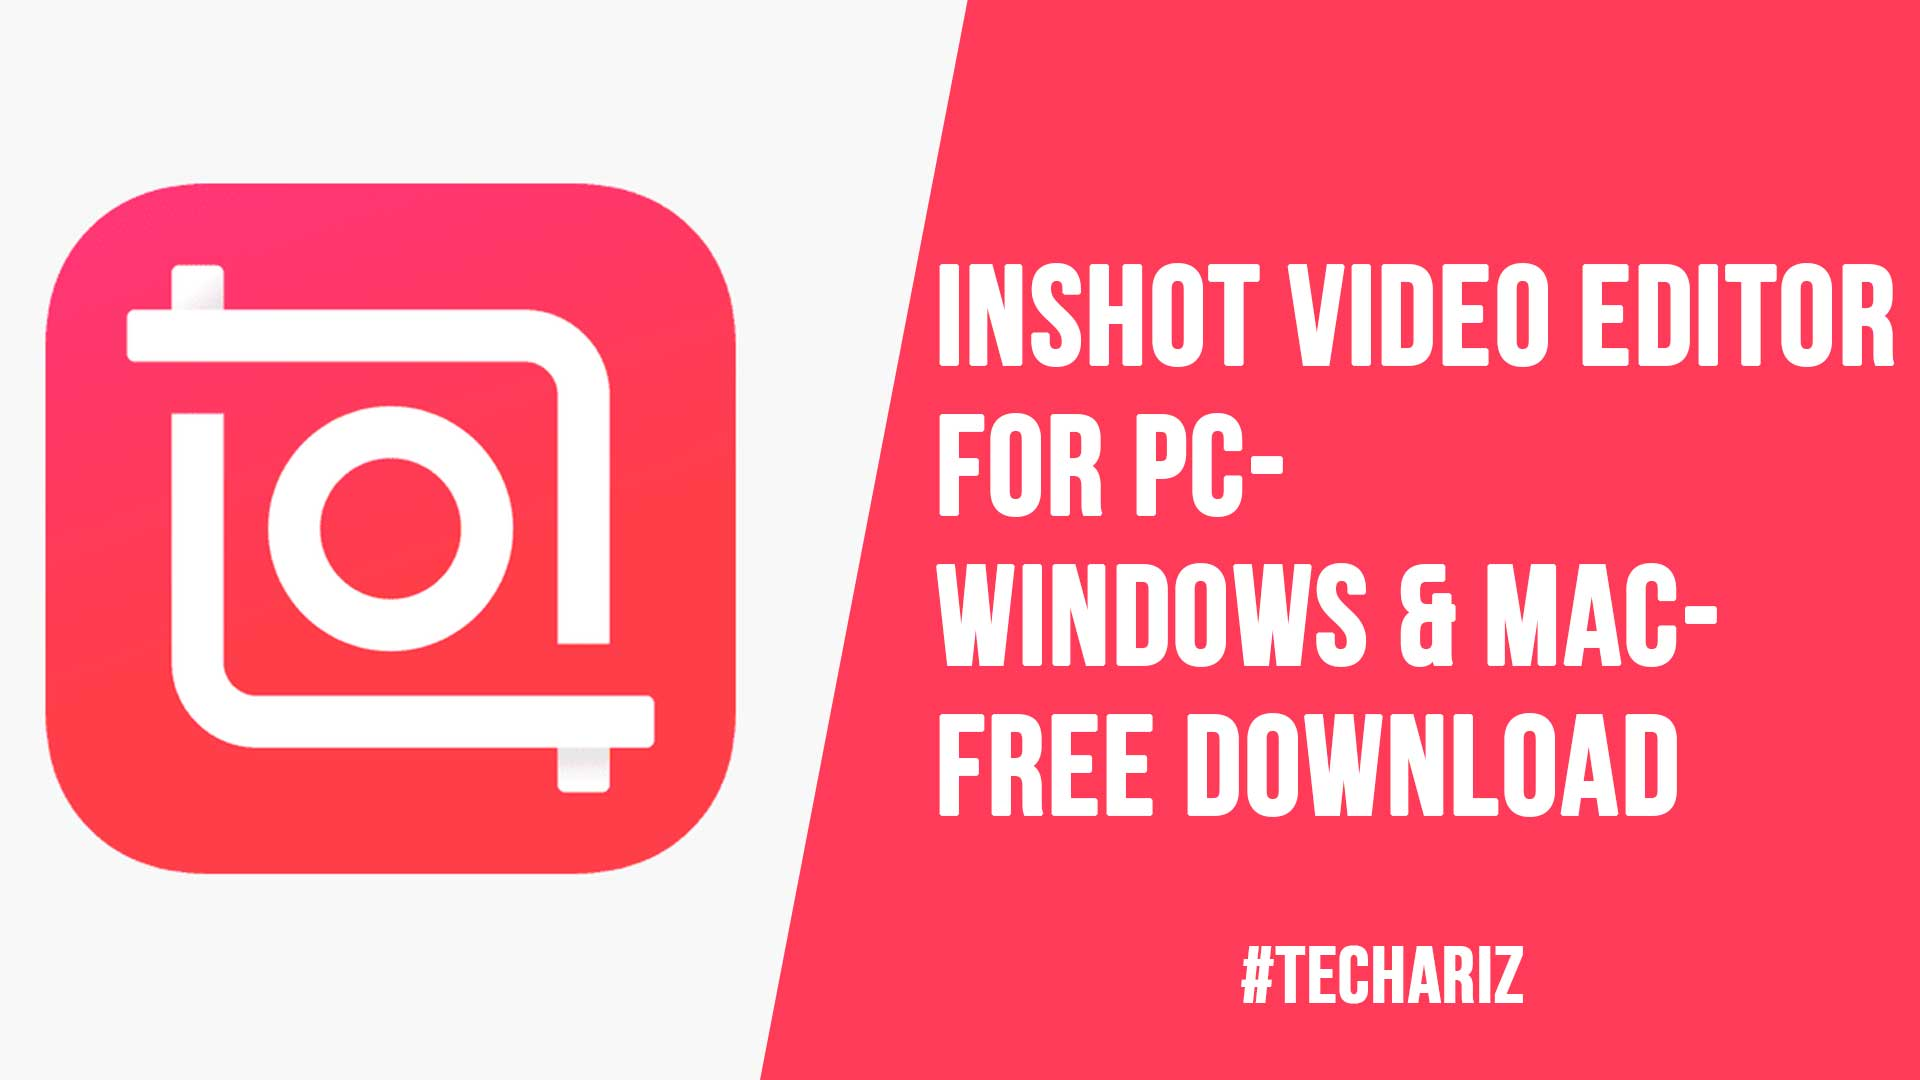 InShot Video Editor for PC Windows Mac Free Download